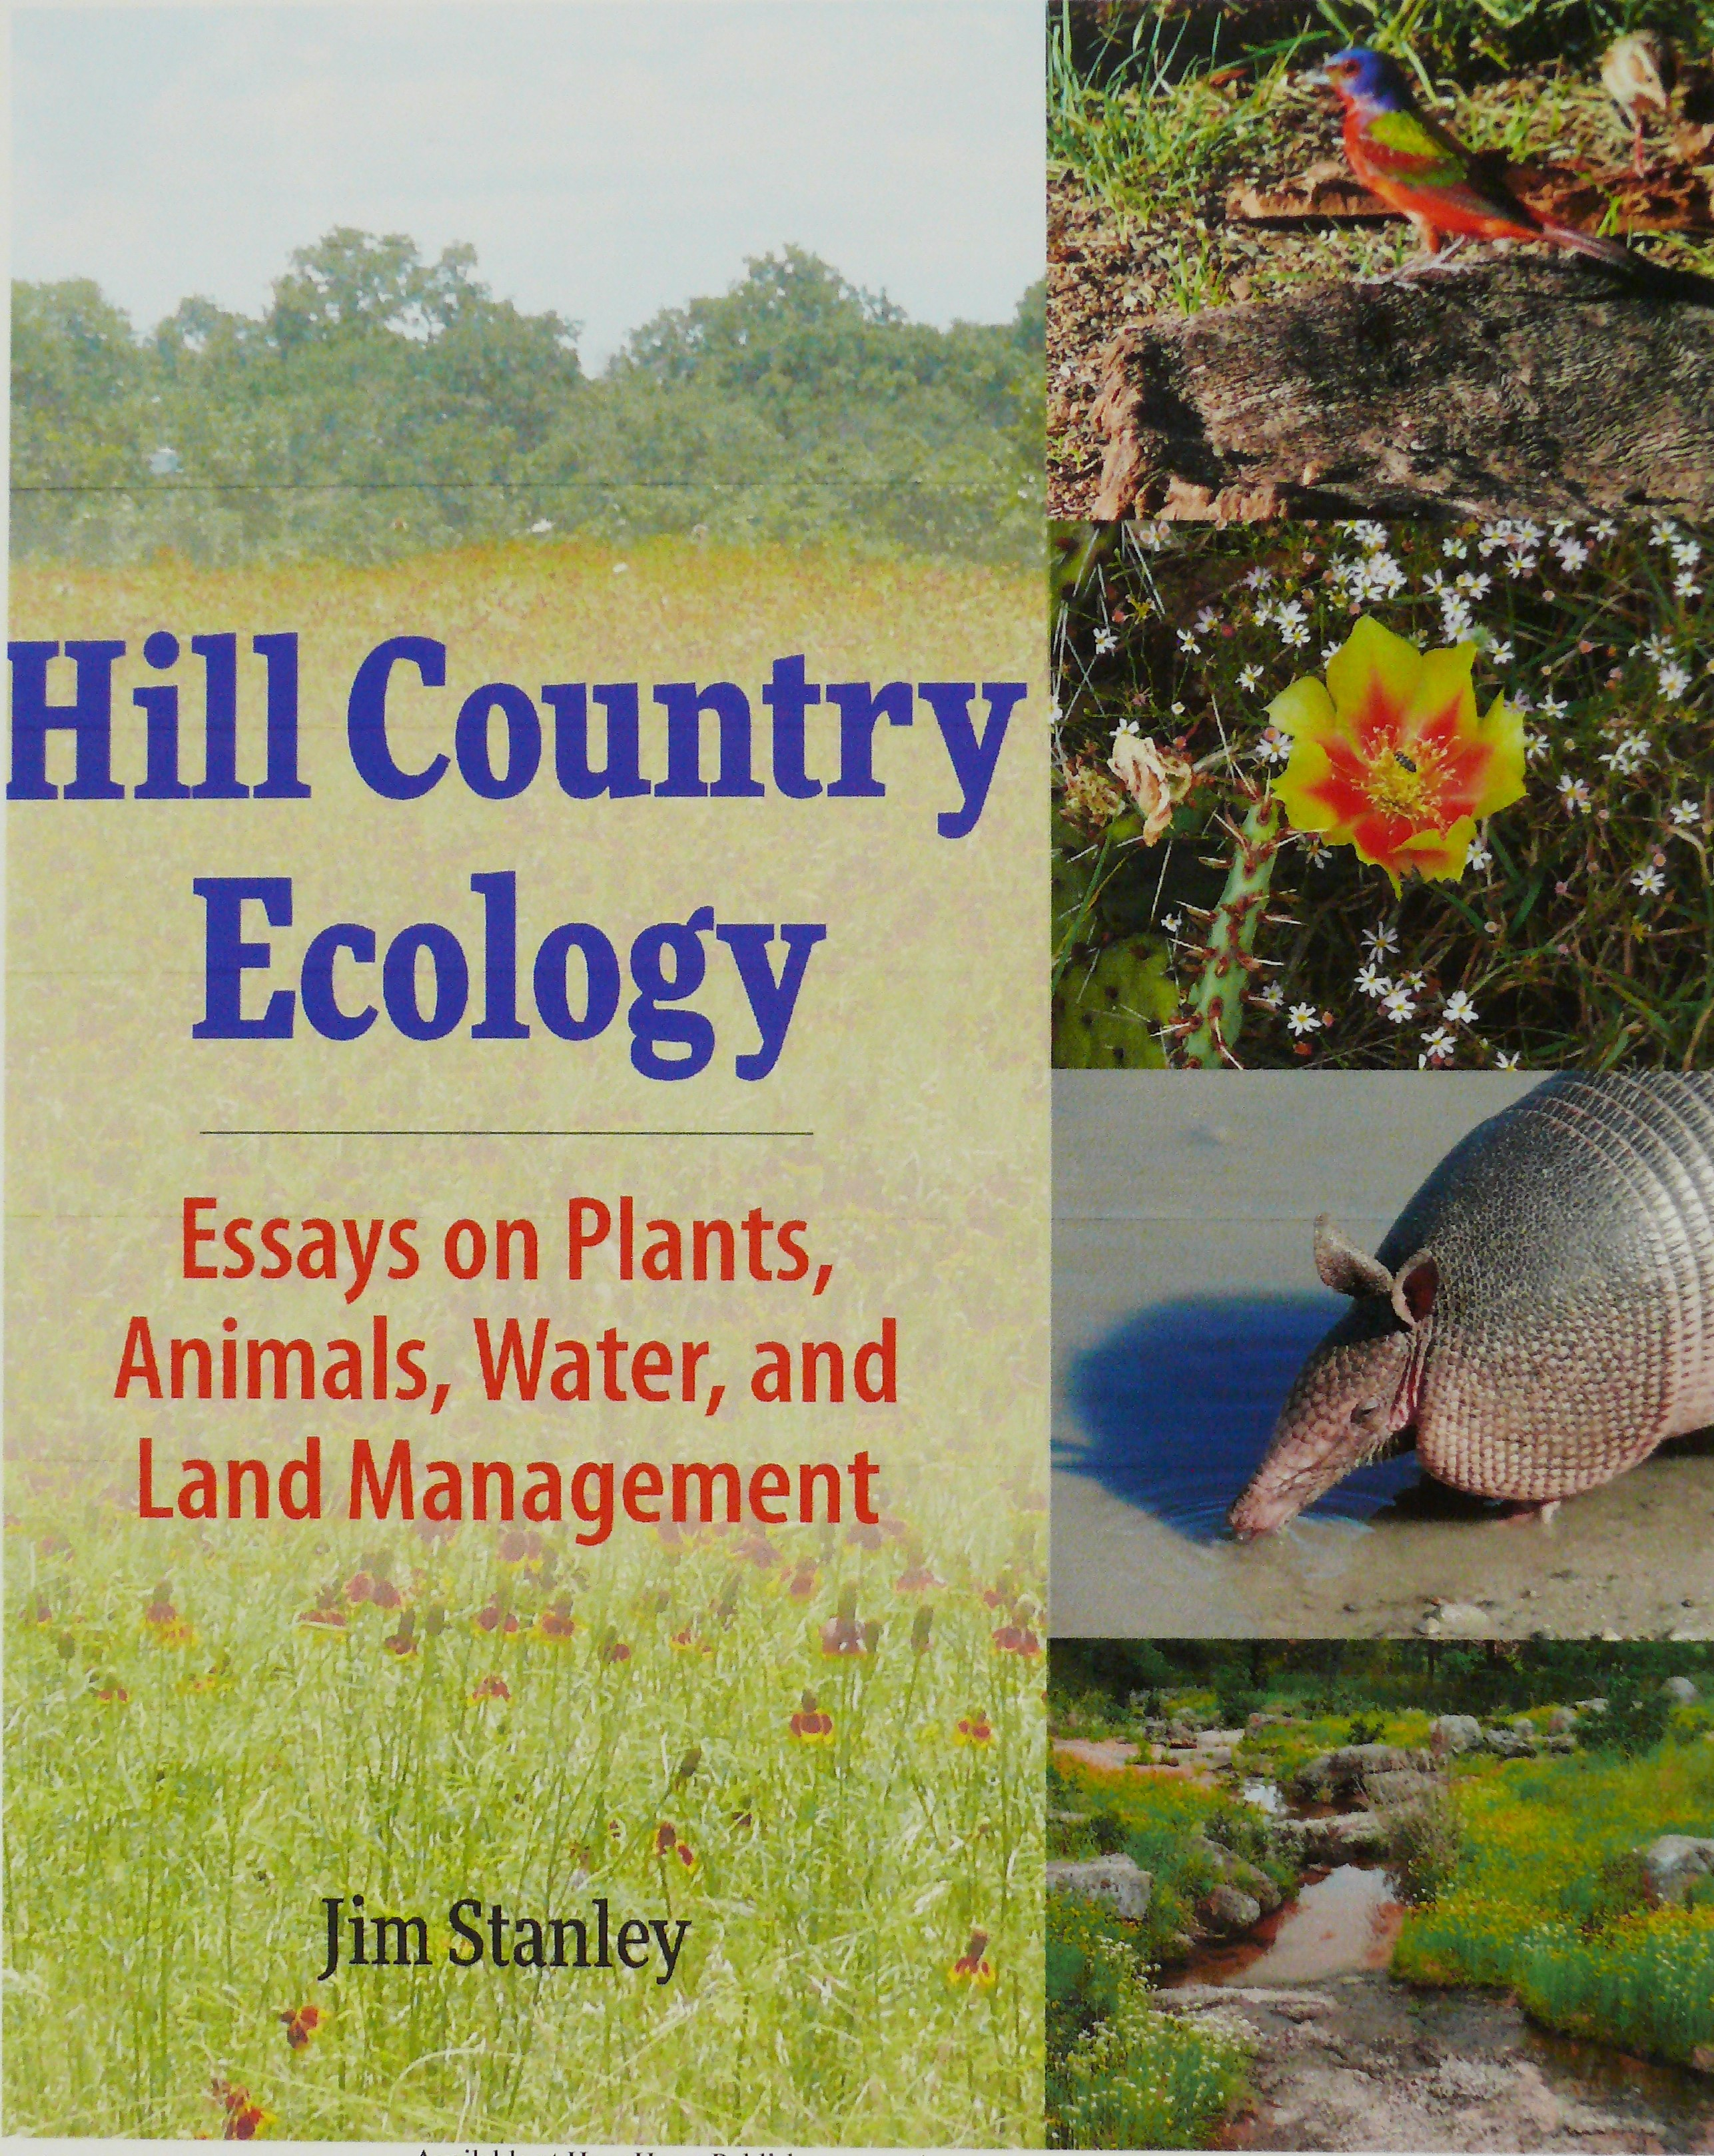 Hill Country Ecology